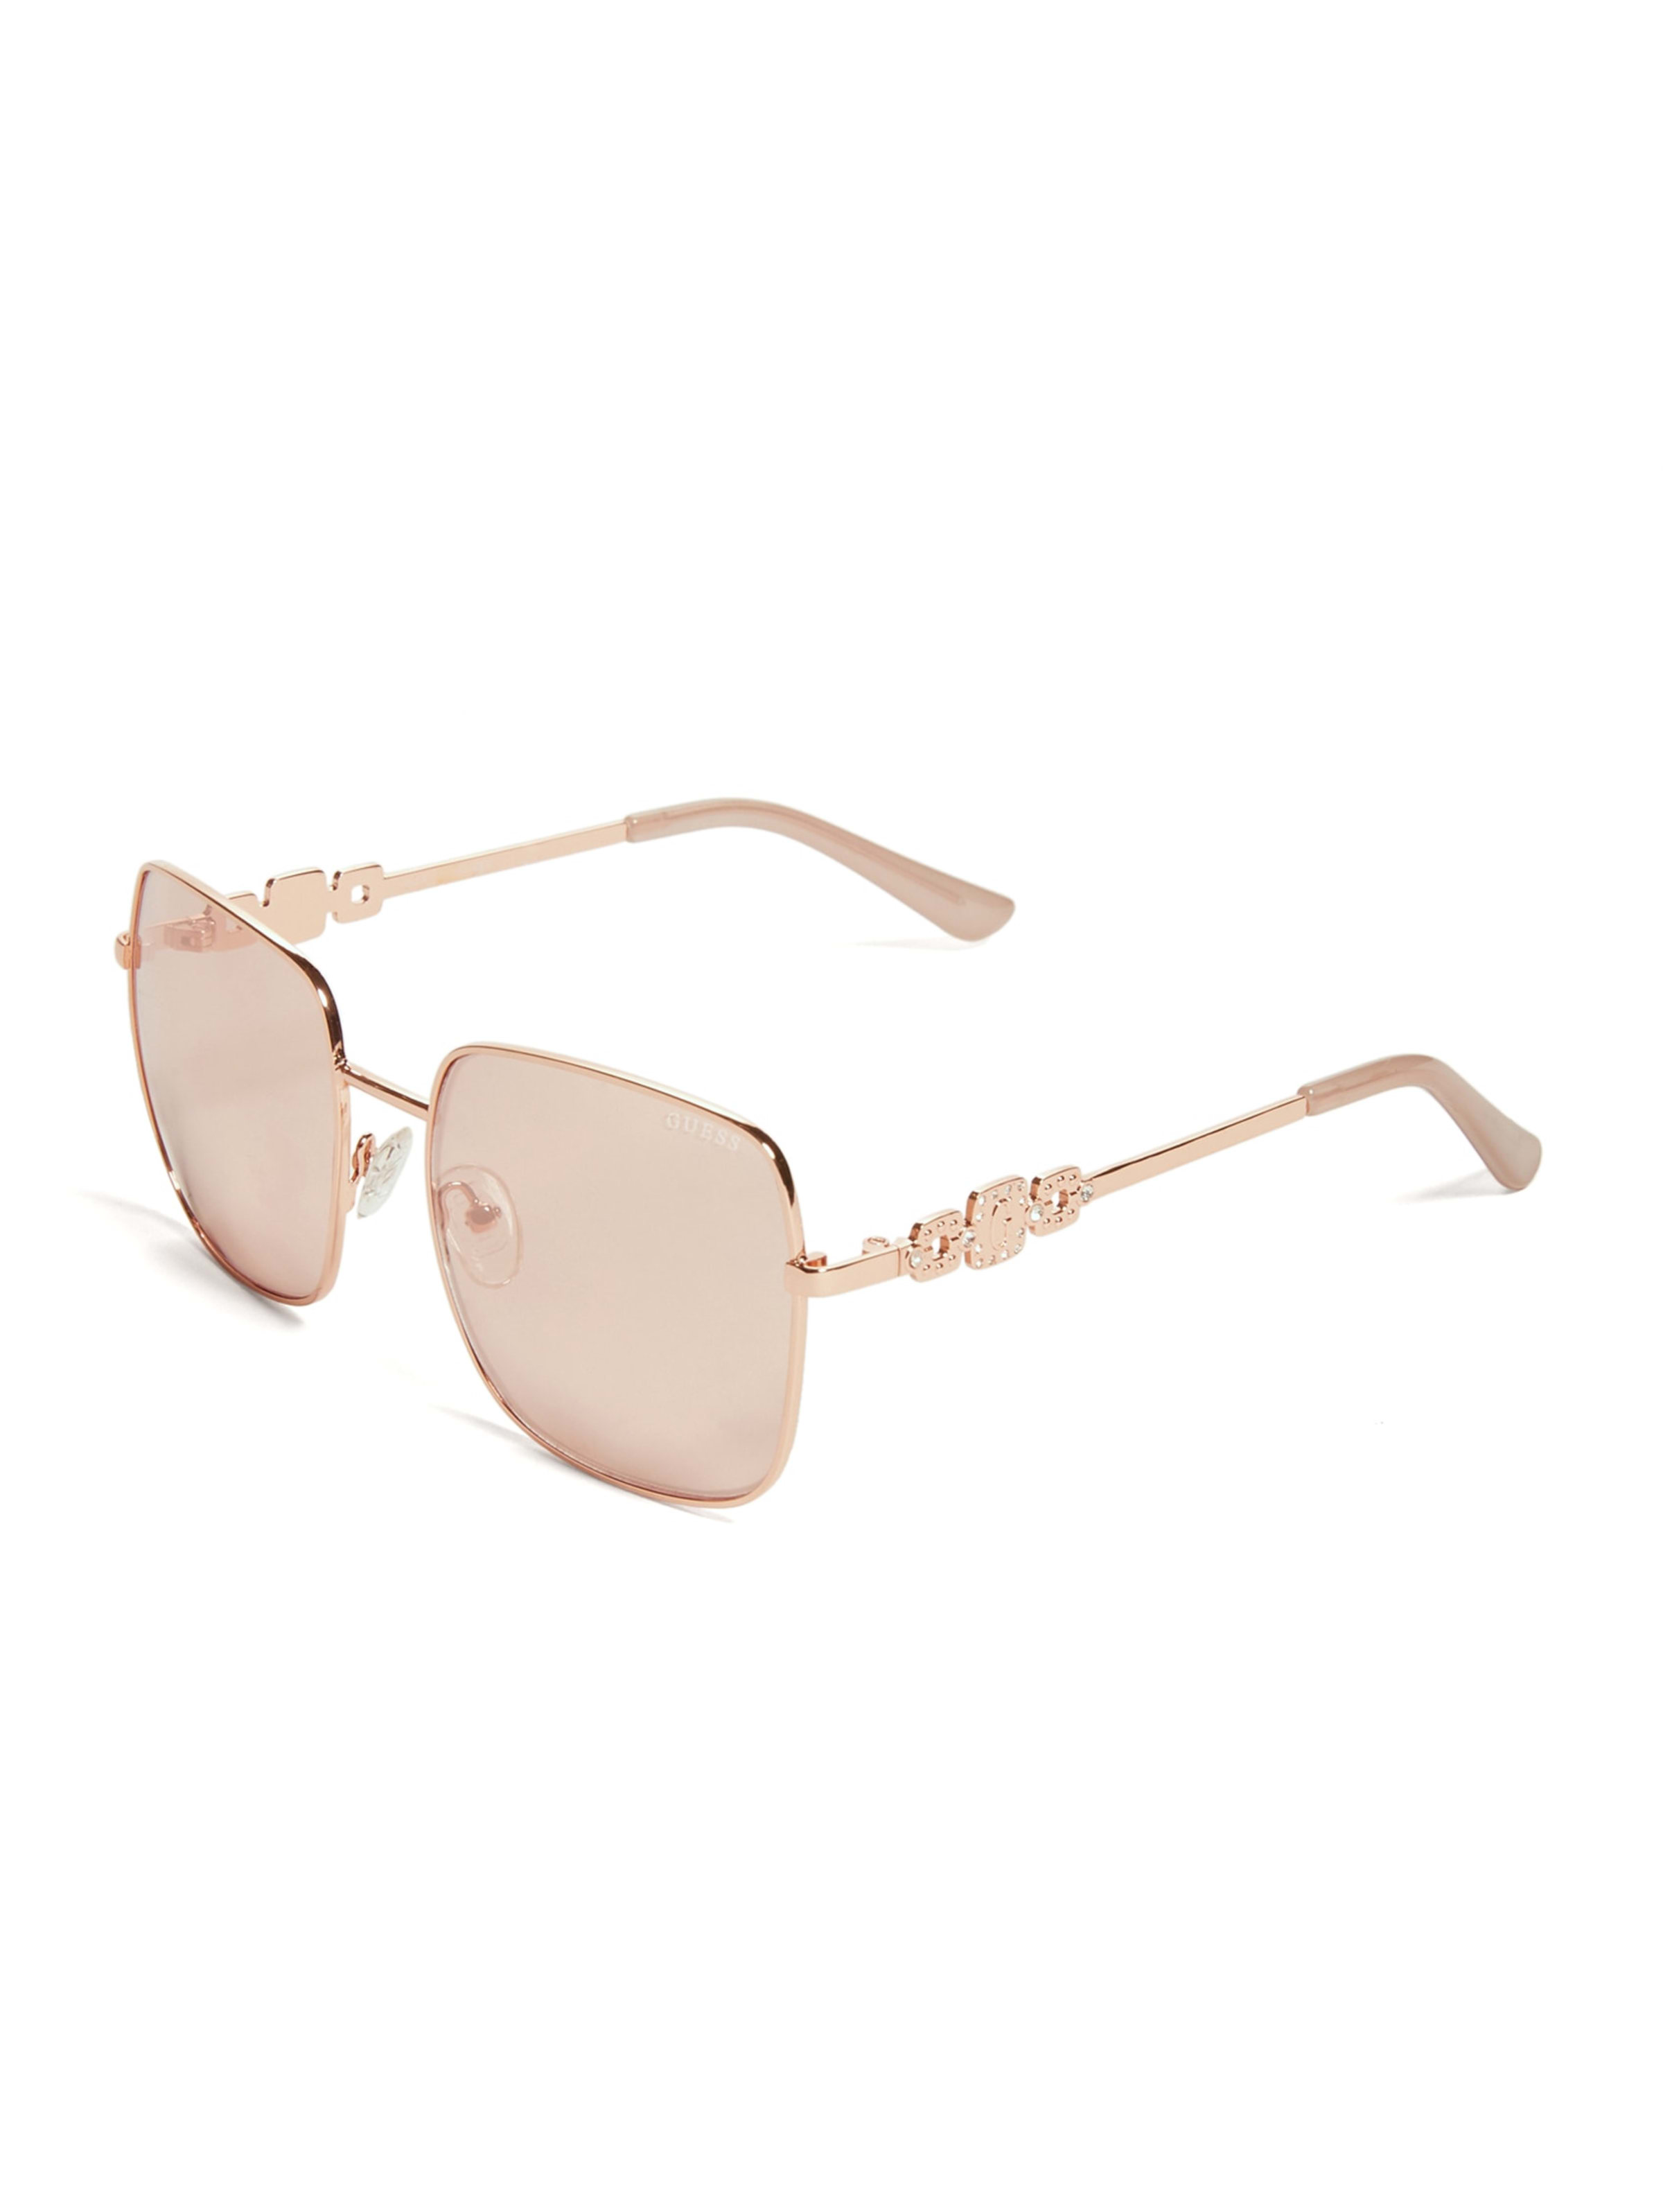 Rhinestone Square Aviator Sunglasses |